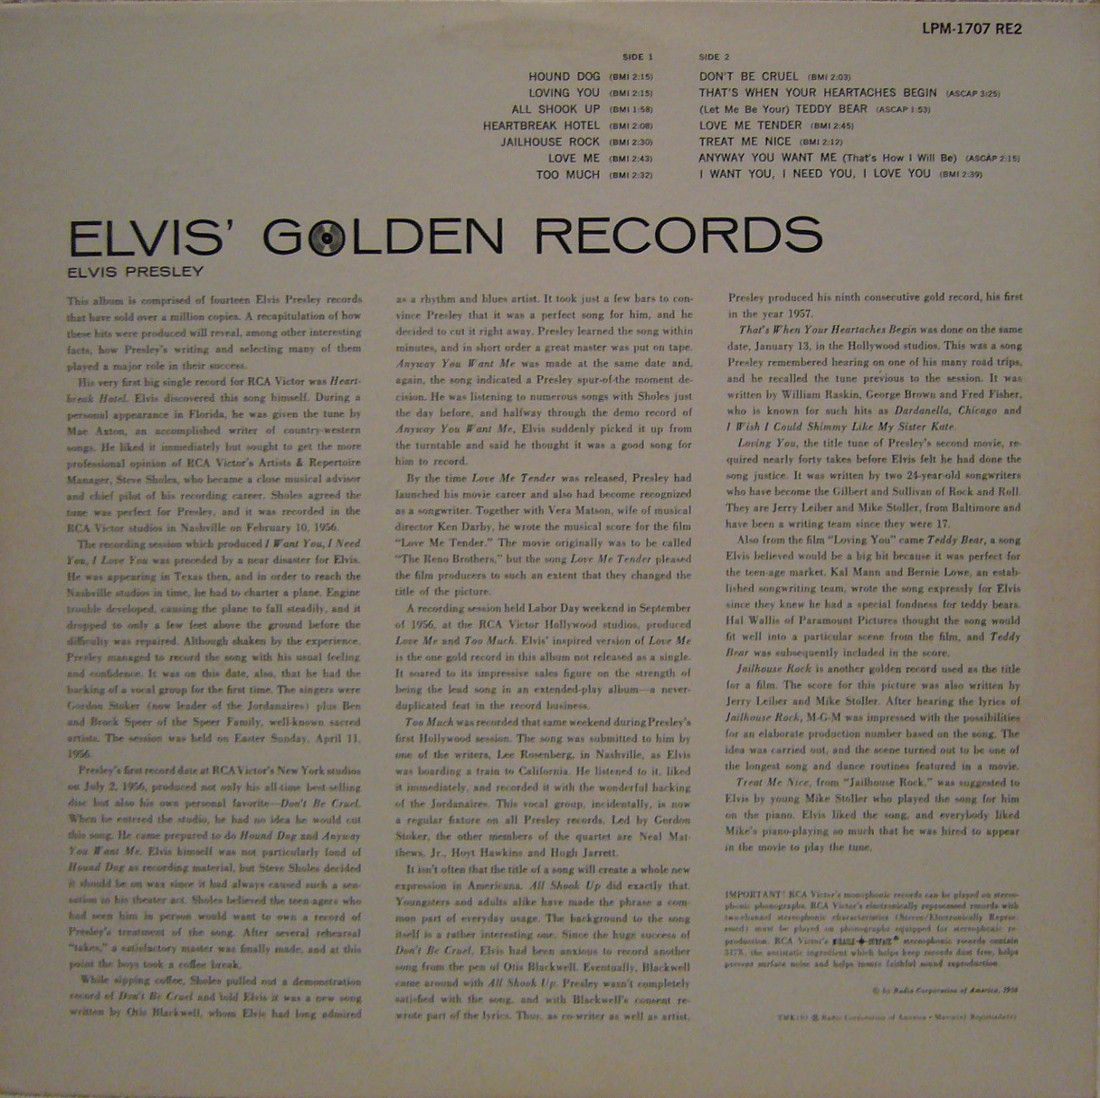 ELVIS' GOLD RECORDS  Lpm1707re2bb1pyt